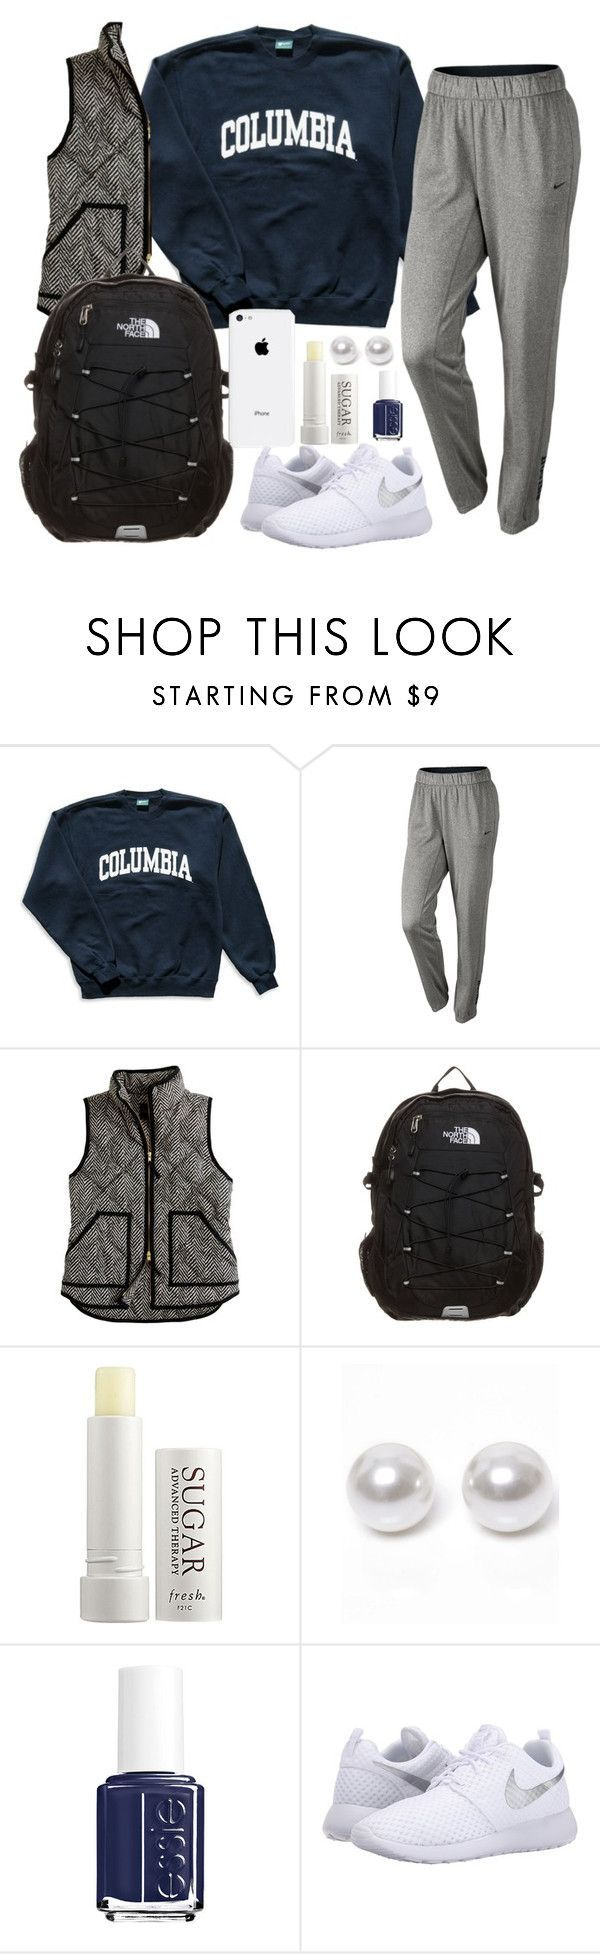 """""""lazy cold day outfit(((:"""" by carolina-prepster ❤ liked on Polyvore featuring Columbia, NIKE, J.Crew, The North Face, Fresh, Nouv-Elle and Essie"""